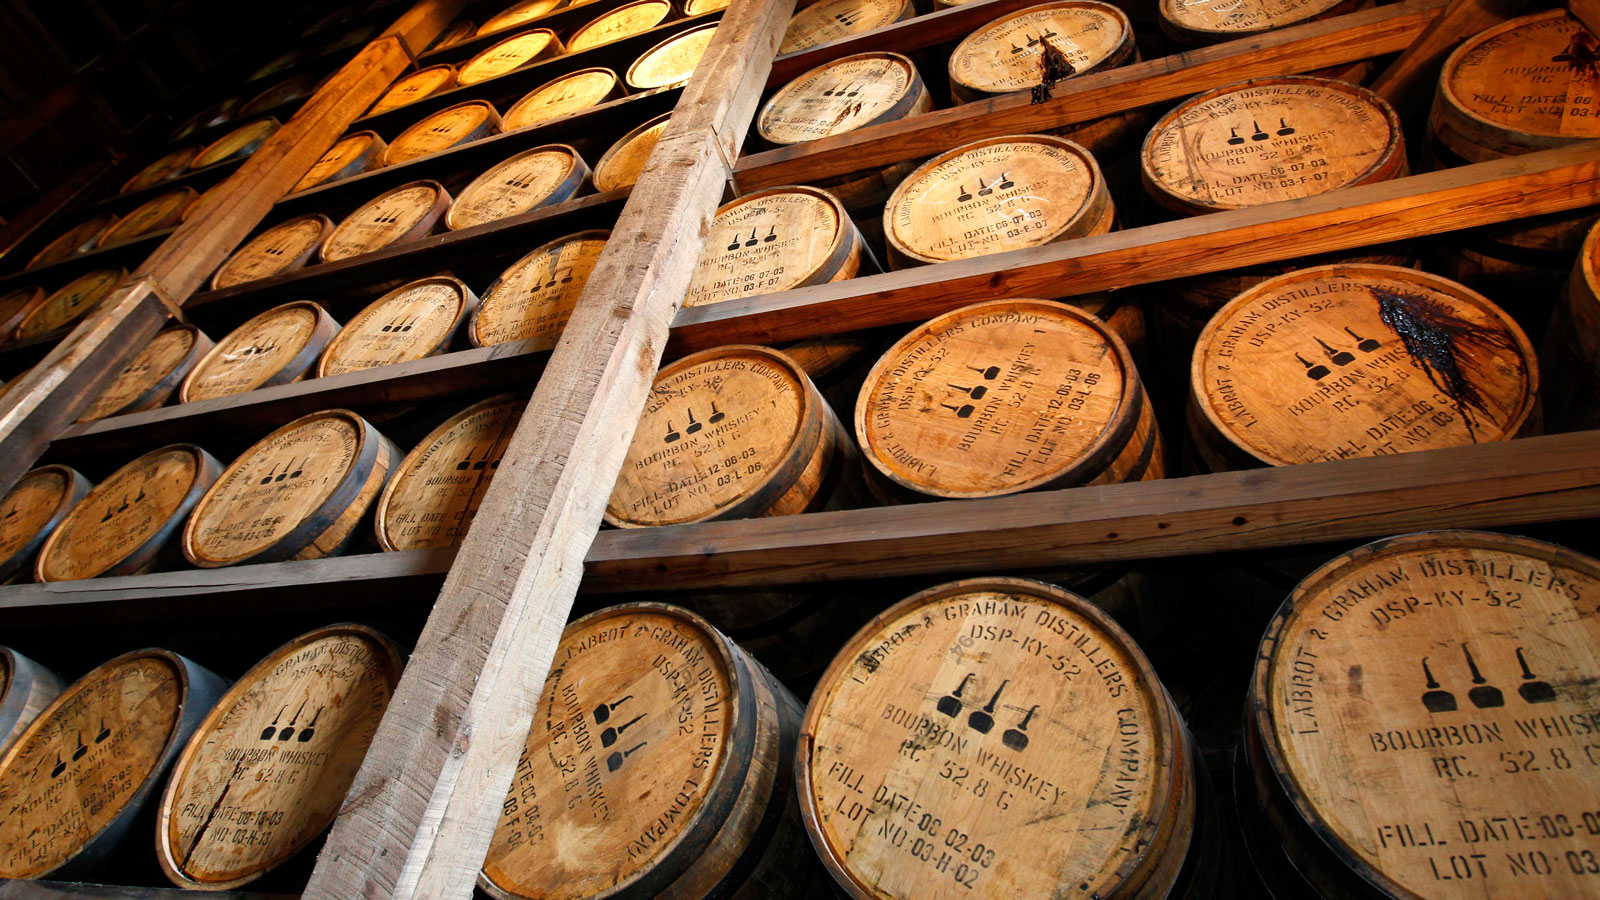 10 Terms Every Bourbon Drinker Should Know